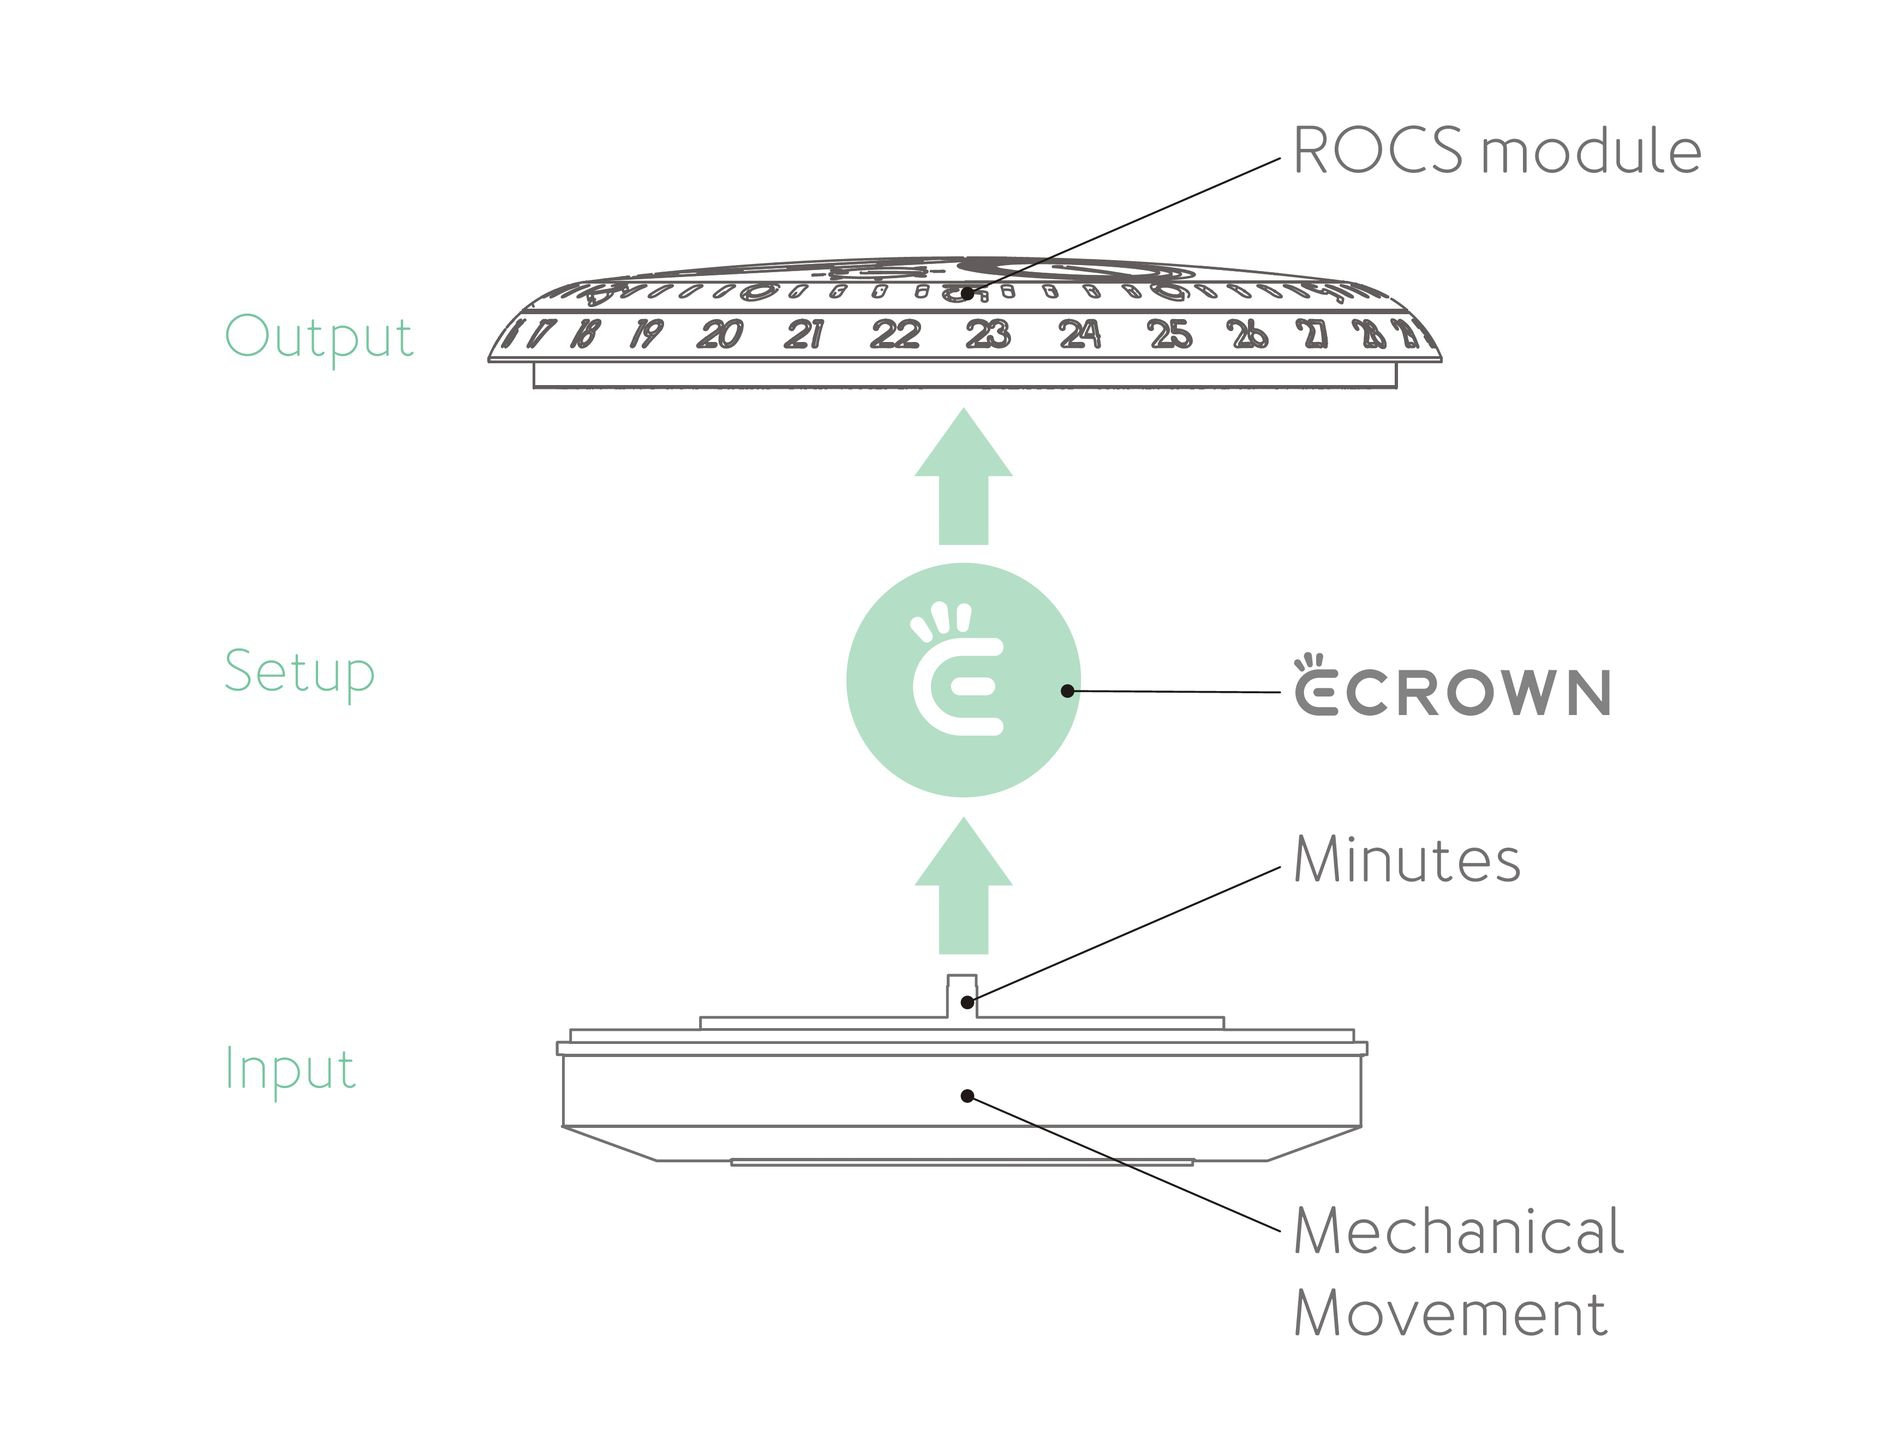 ressence-e-crown-architecture_result